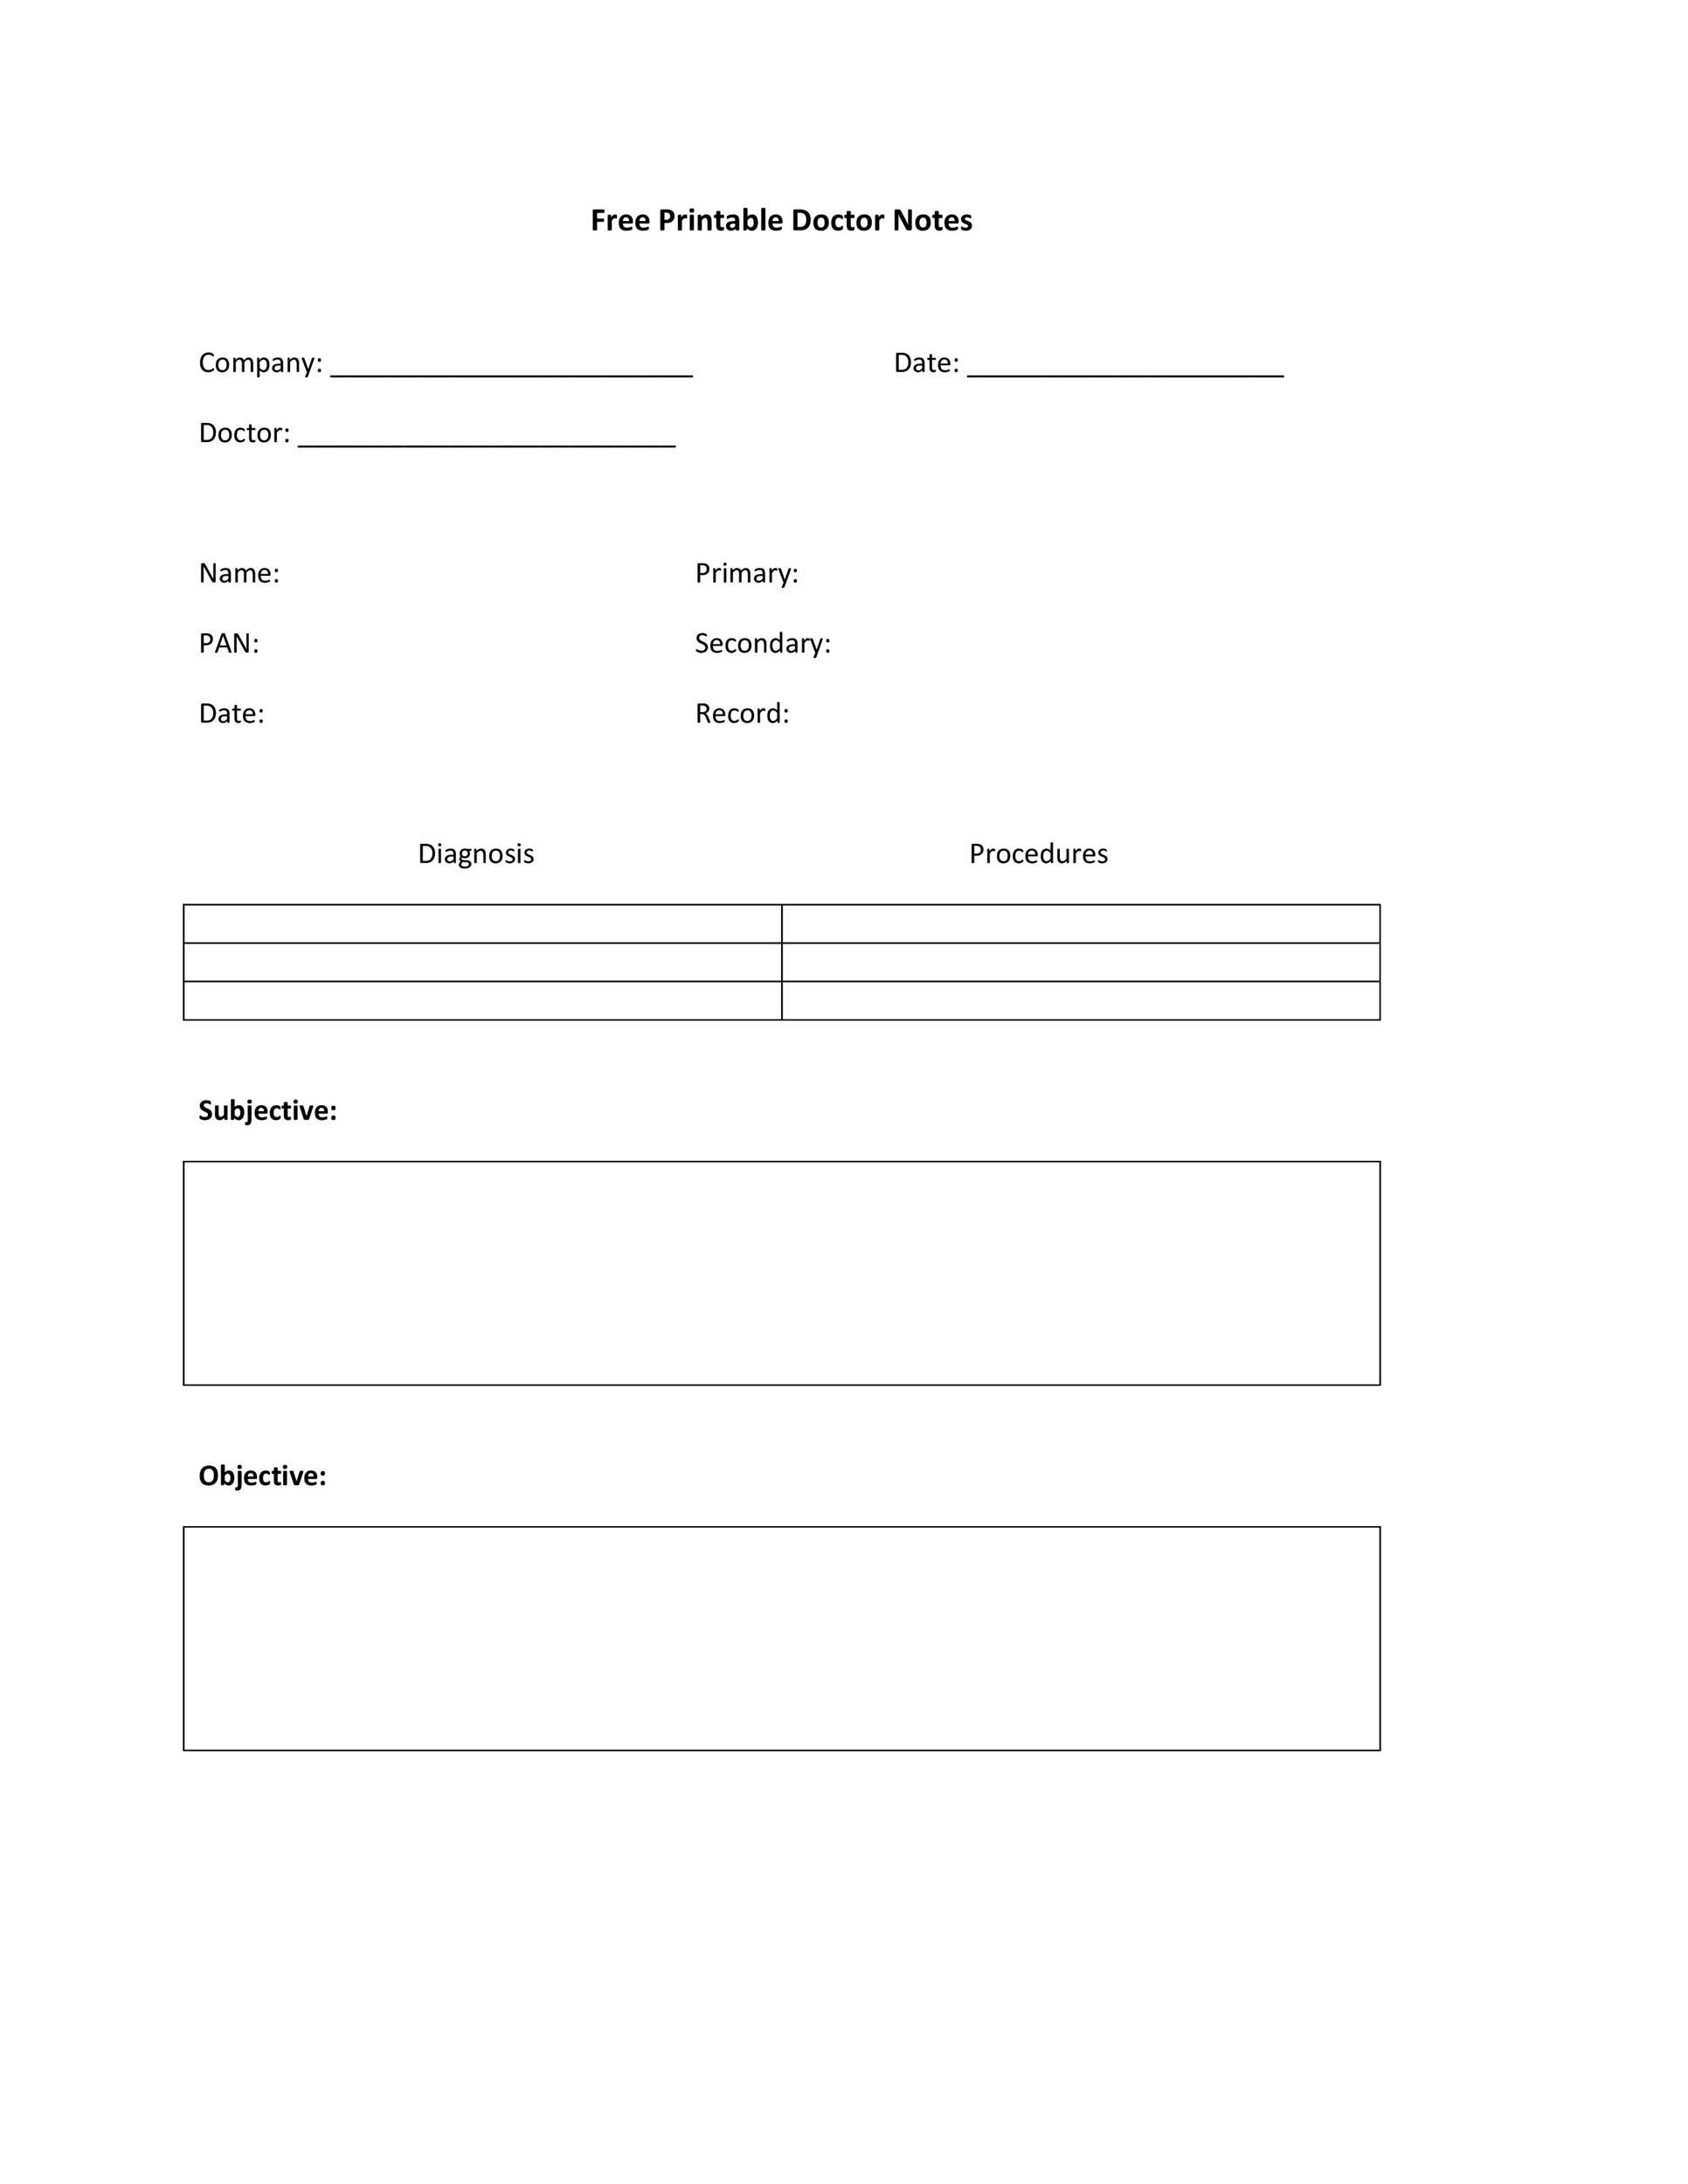 005 Fascinating Doctor Note Template Free Download Idea  FakeFull